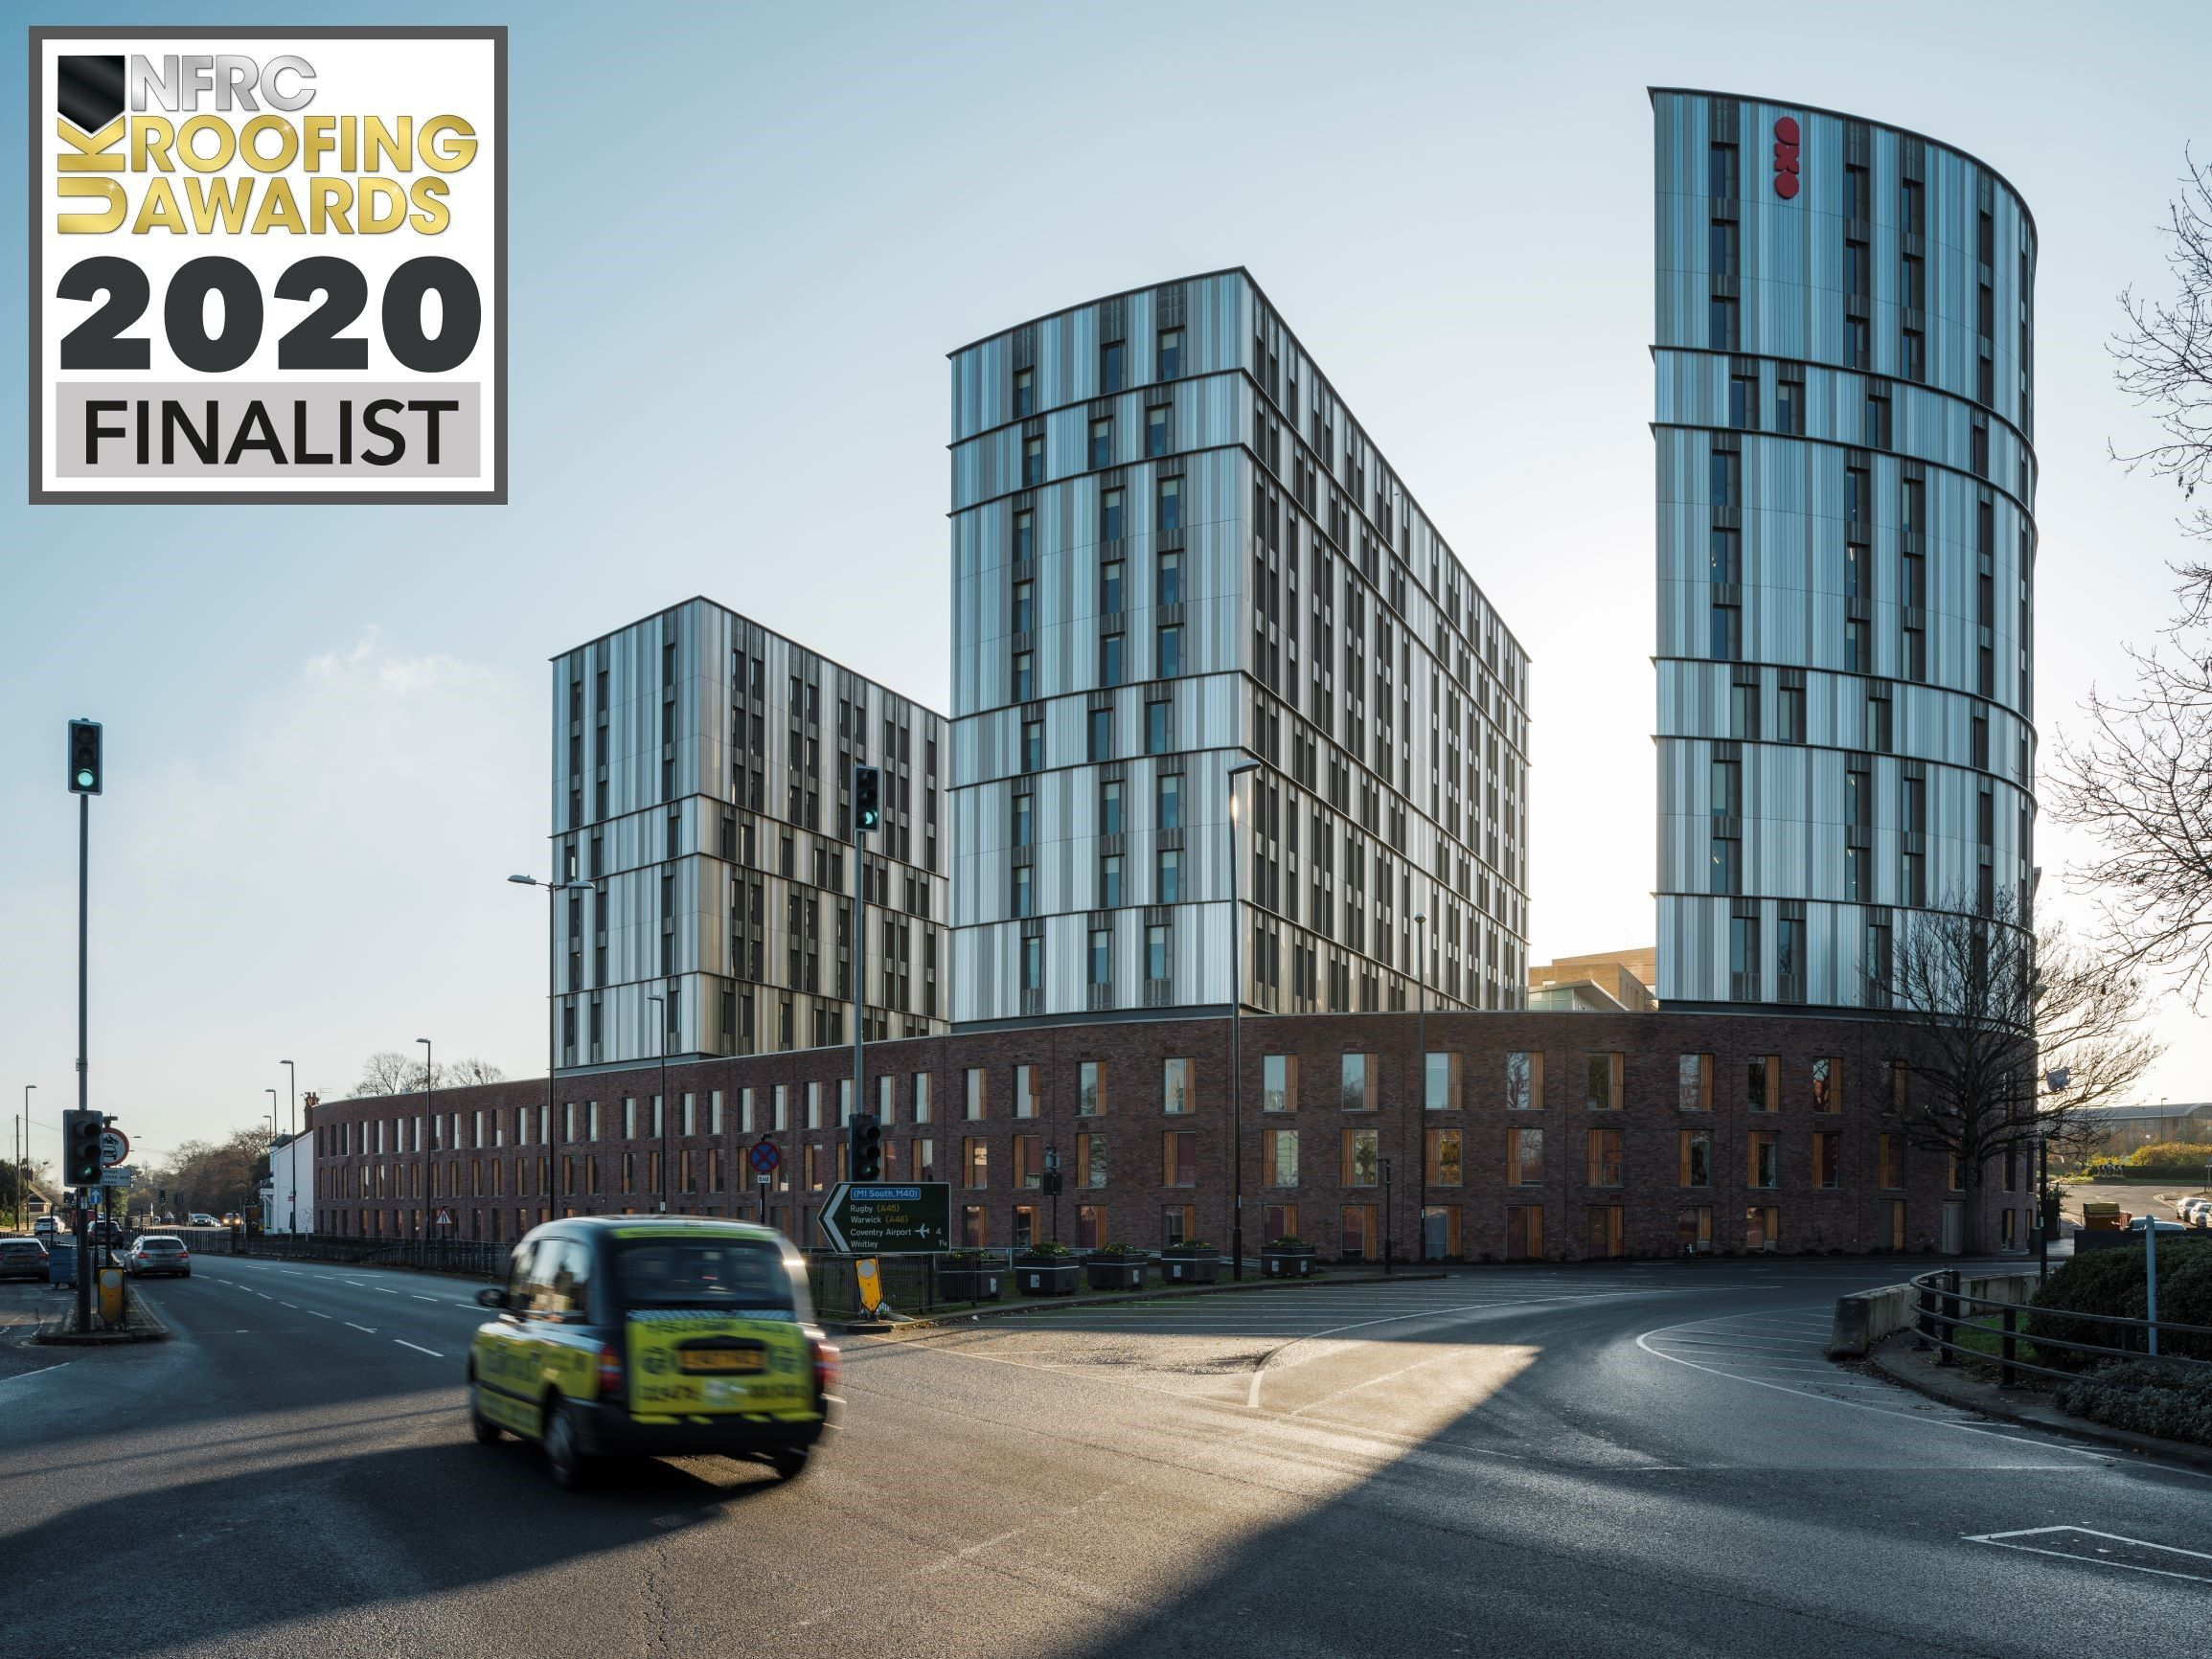 A great end to the week with a focus on our project at Paradise Street in Coventry.  Shortlisted in the Rainscreen category at the NFRC UK Roofing Awards 2020!  Thanks to our supply chain and every member of the team who was involved to deliver such an amazing development.  #roofingawards2020 #RA2020 #ukroofingawards #teamlongworth #coventry #studentaccommodation #newbuild #construction #constructionuk #awards #success #nominated #nfrc #roofing #rainscreen #finalists #facade #buildingenvelope